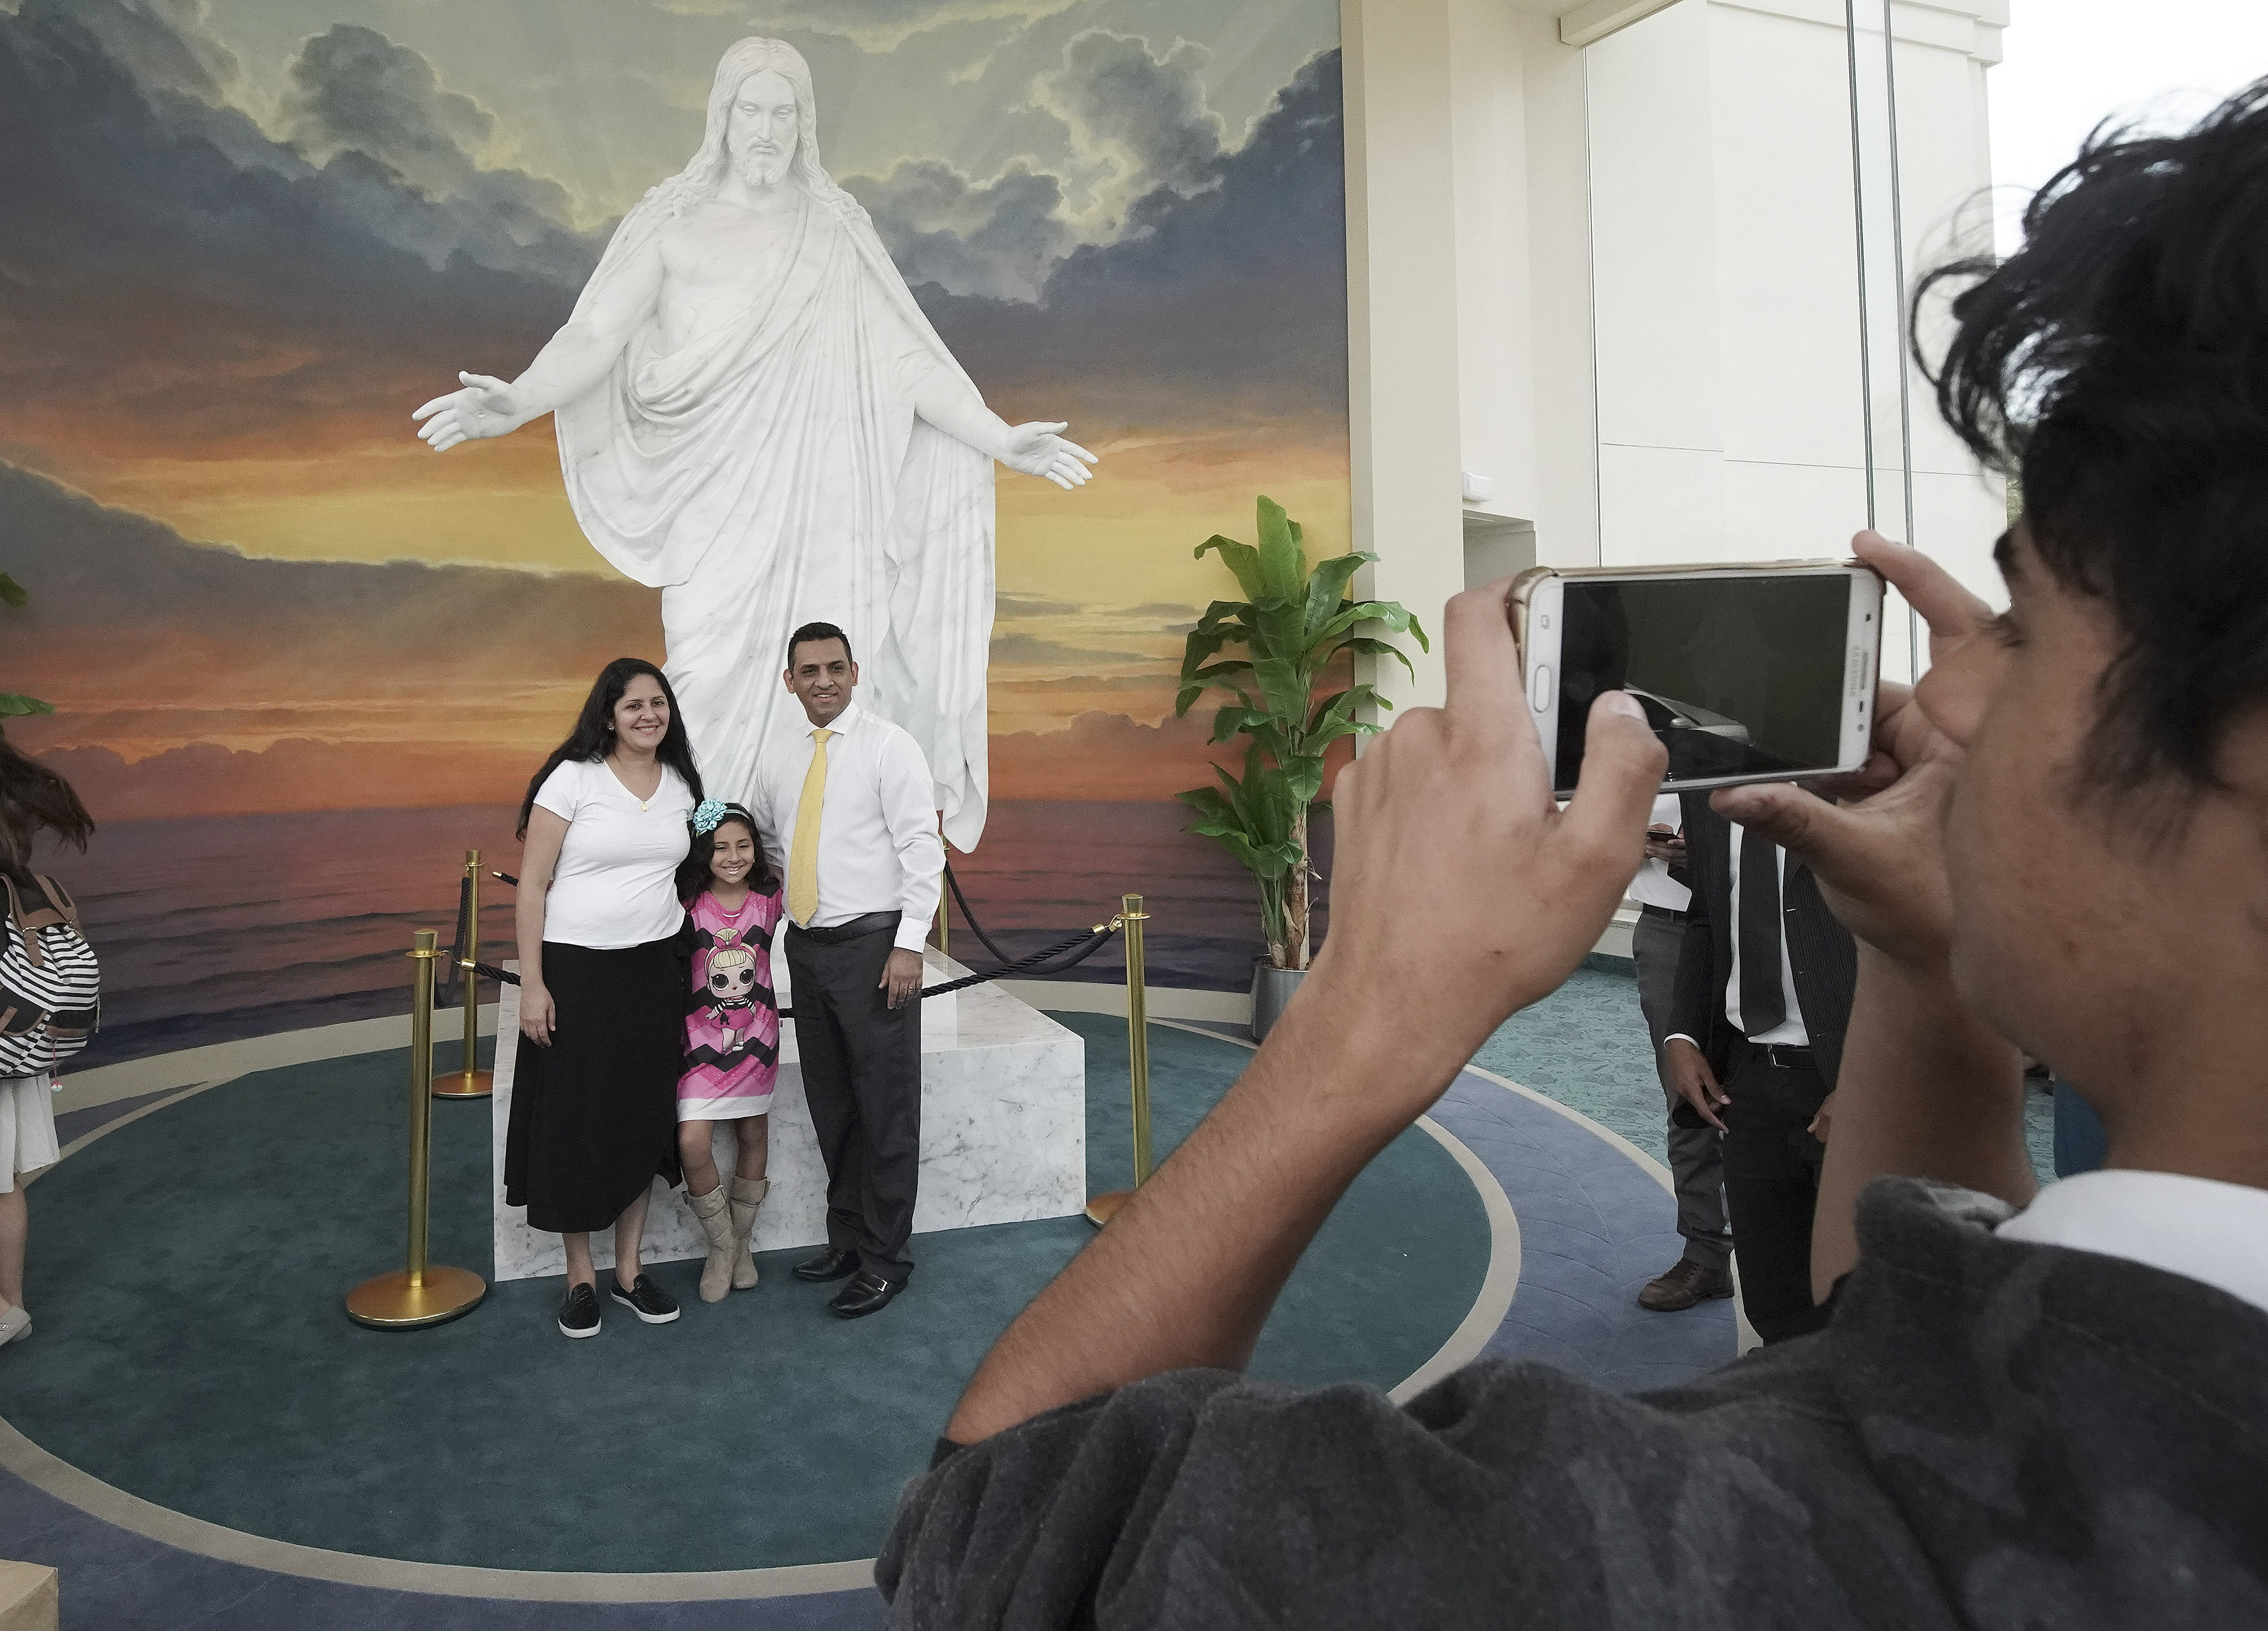 Photos are taken in the Sao Paulo Brazil Temple Visitors' Center in Sao Paulo, Brazil, on Aug. 31, 2019.